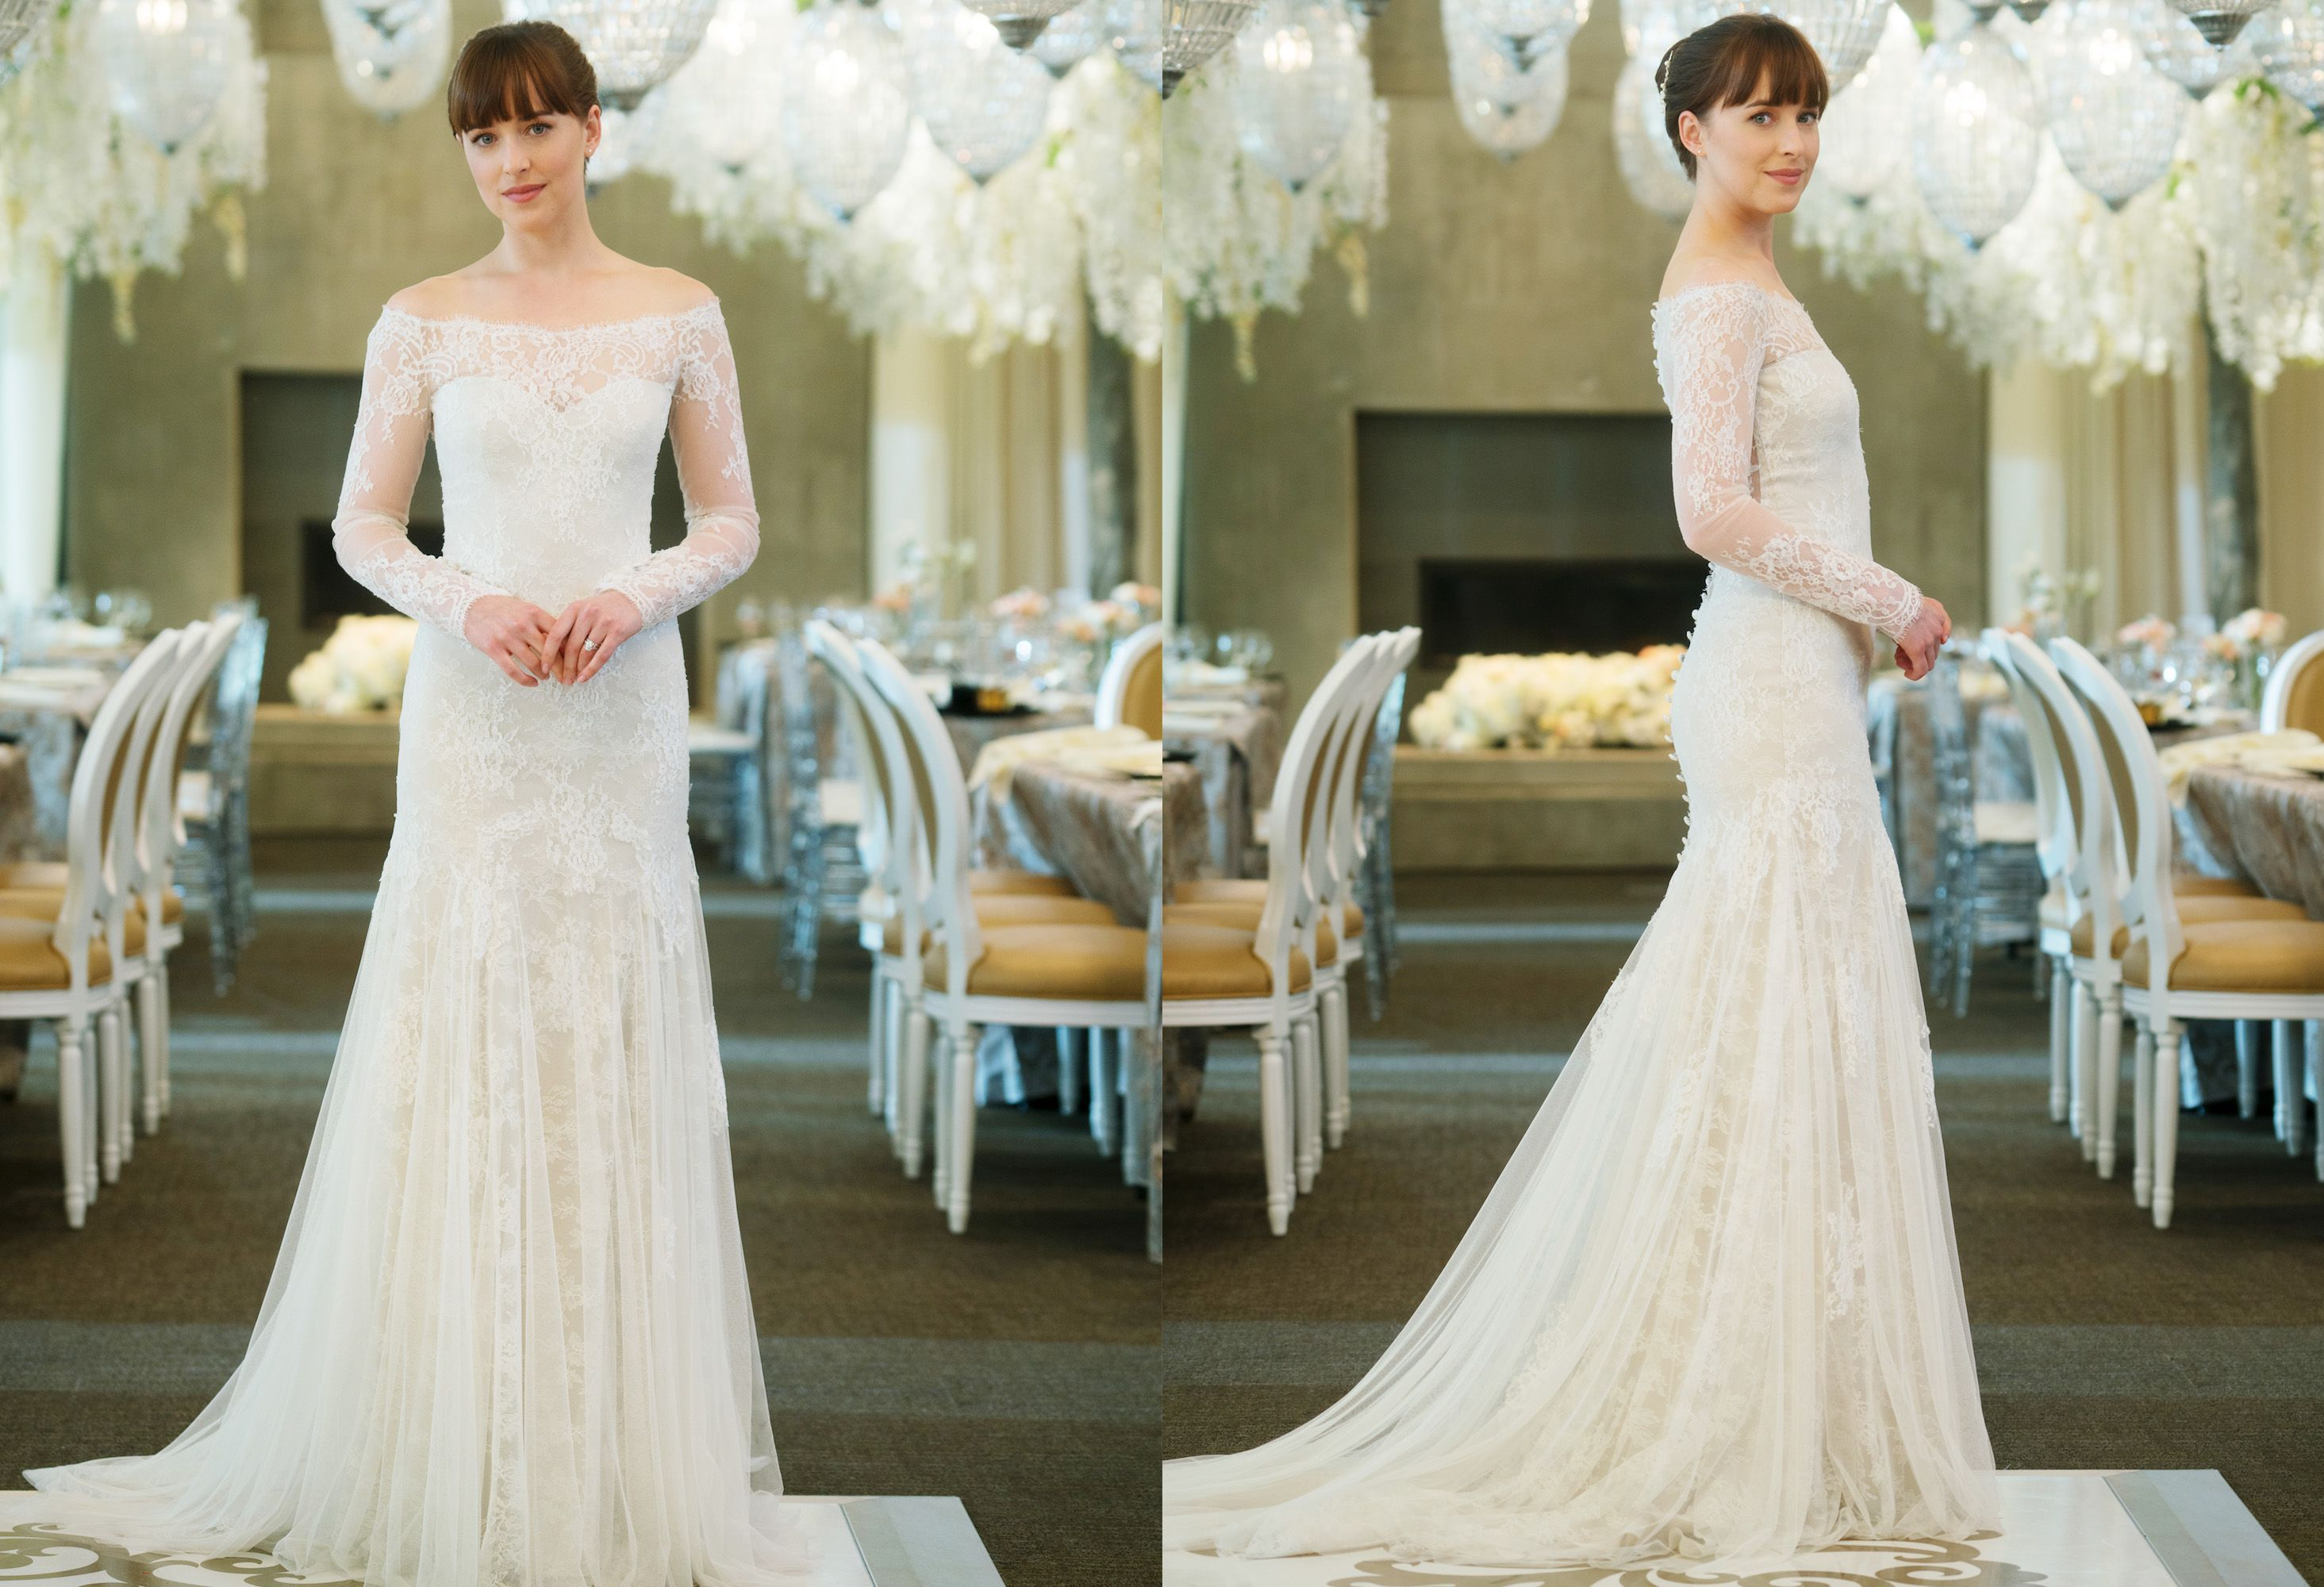 It Took 3 Months To Make The Fifty Shades Freed Wedding Dress Movie Wedding Dresses Wedding Dresses Free Wedding Dress [ 2000 x 2929 Pixel ]